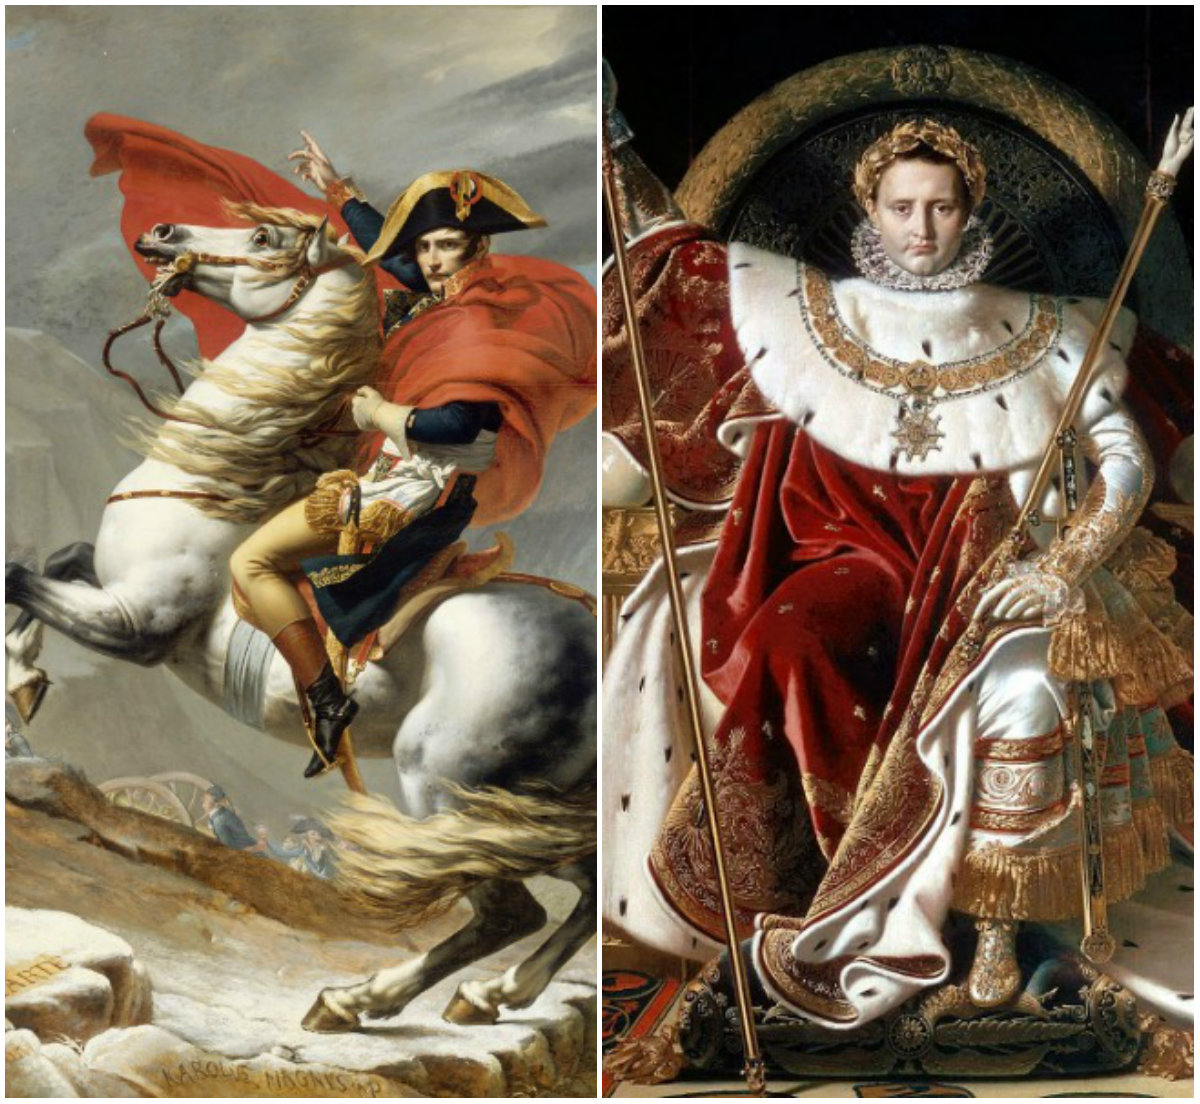 napoleon hero or tyrant napoleon hero vs tyrant